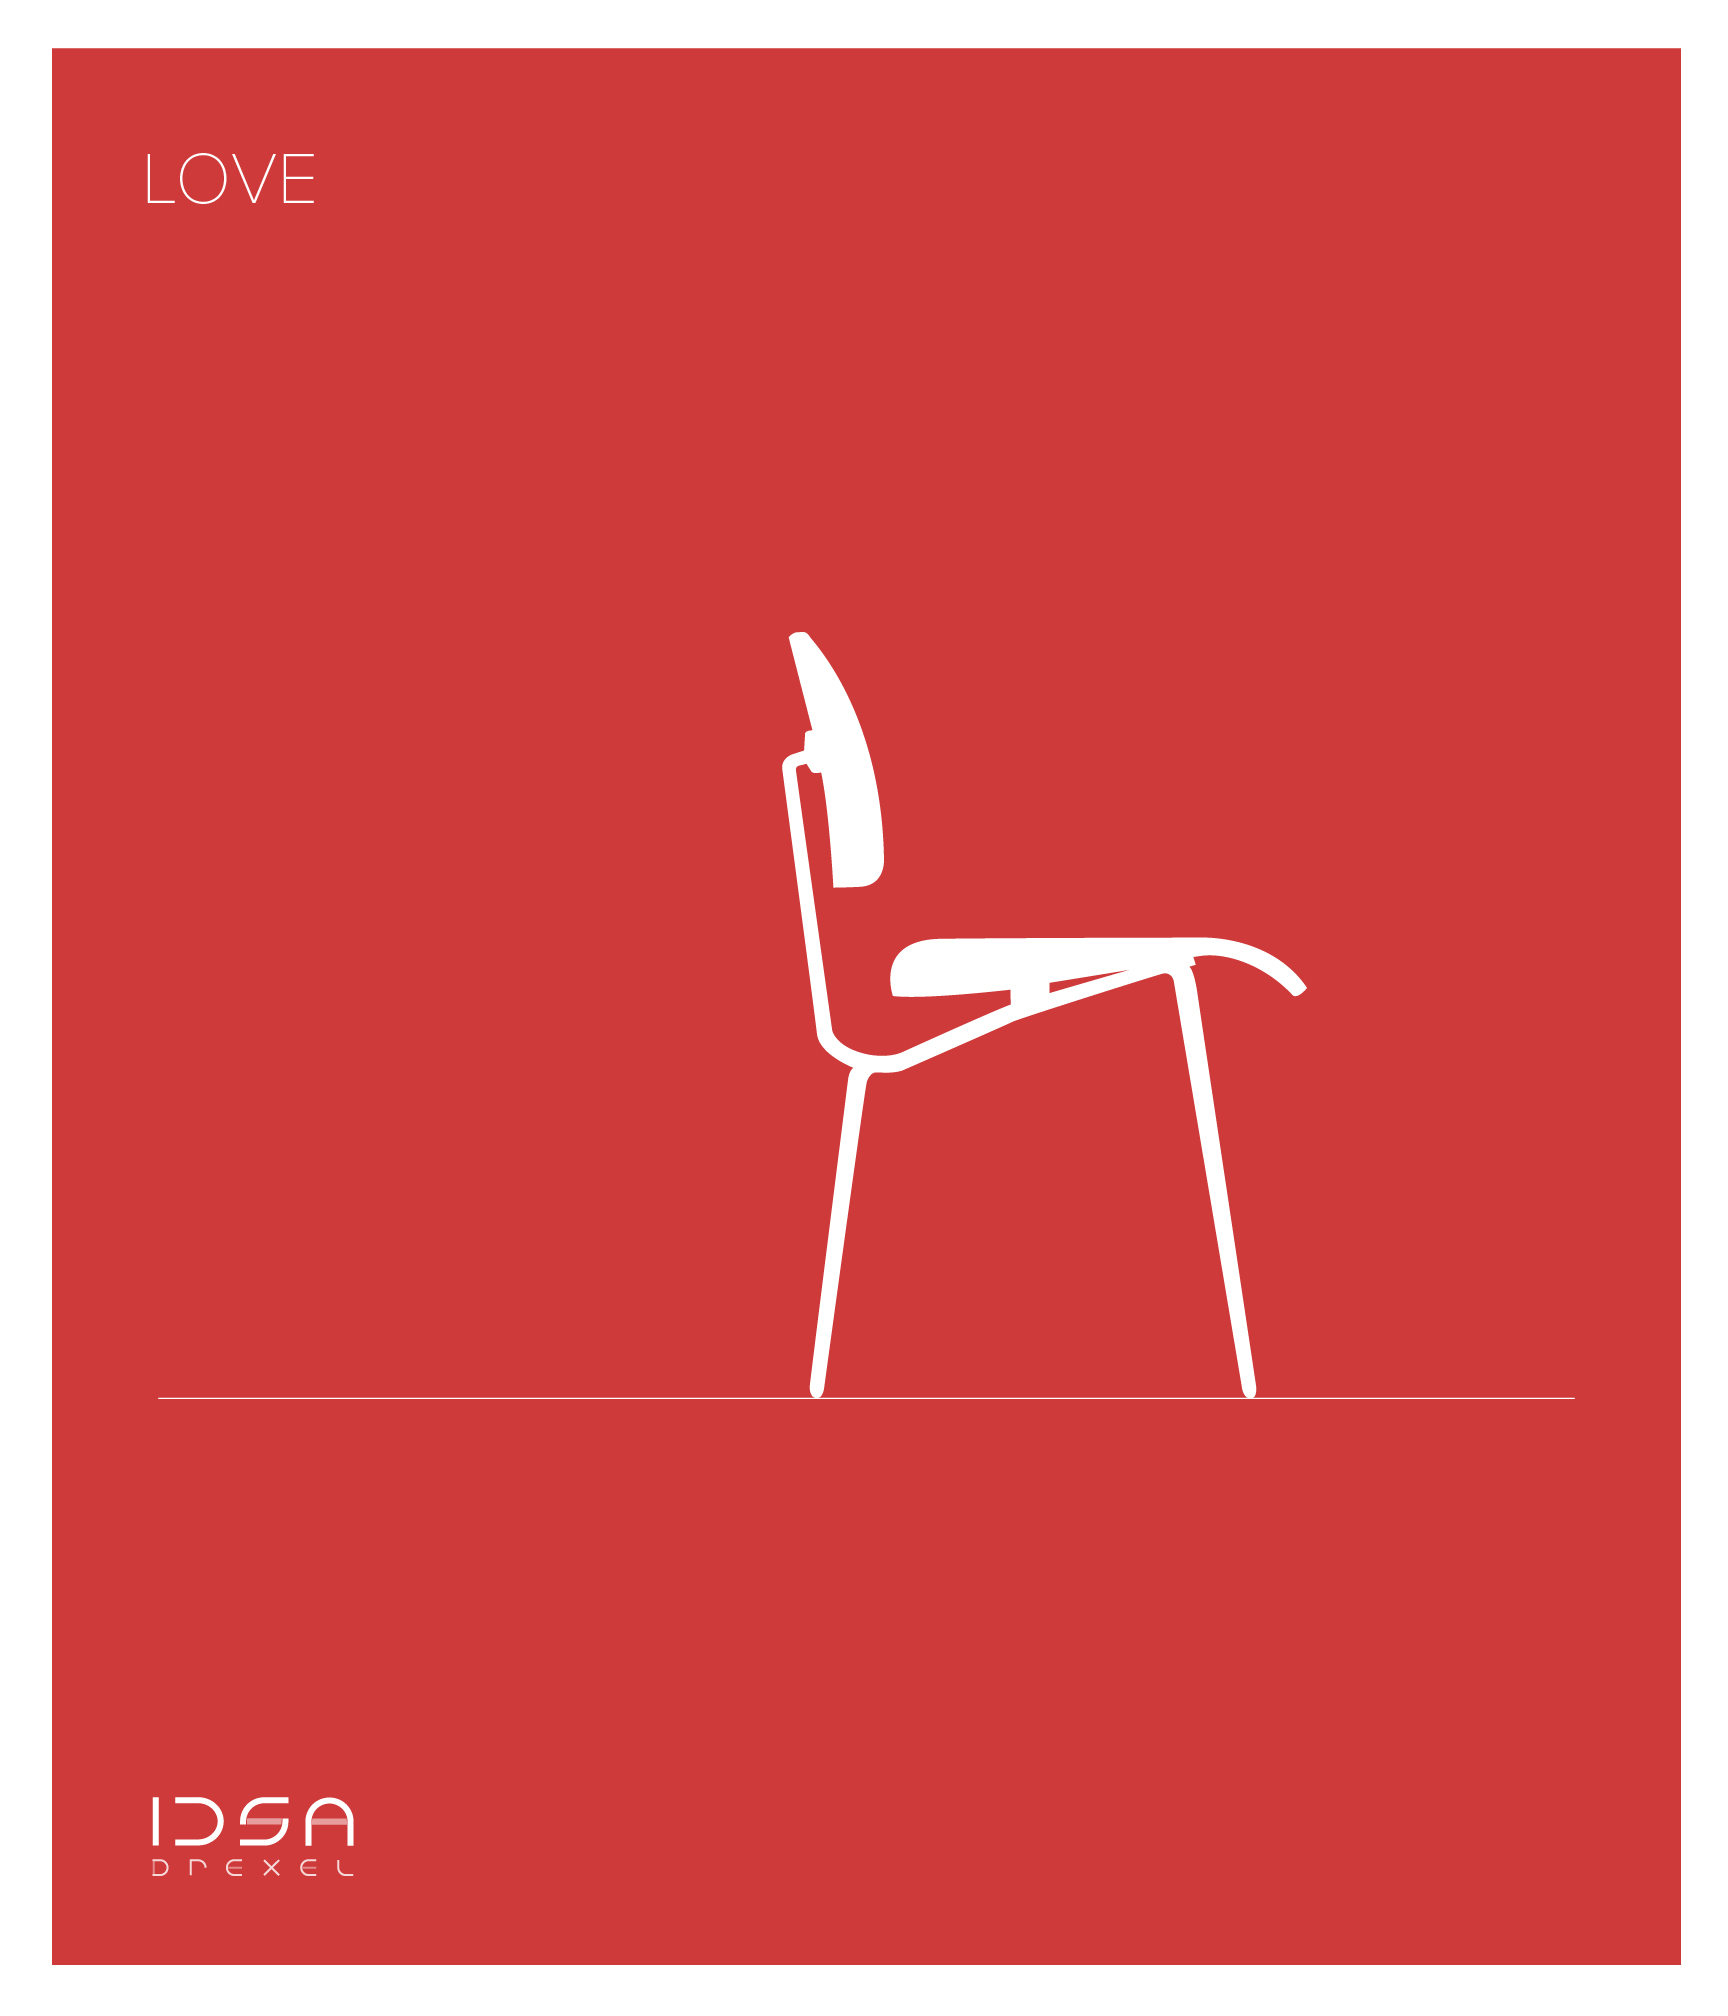 IDSA branding student chapter graphic design arvid minimalist branding eames rams iconic